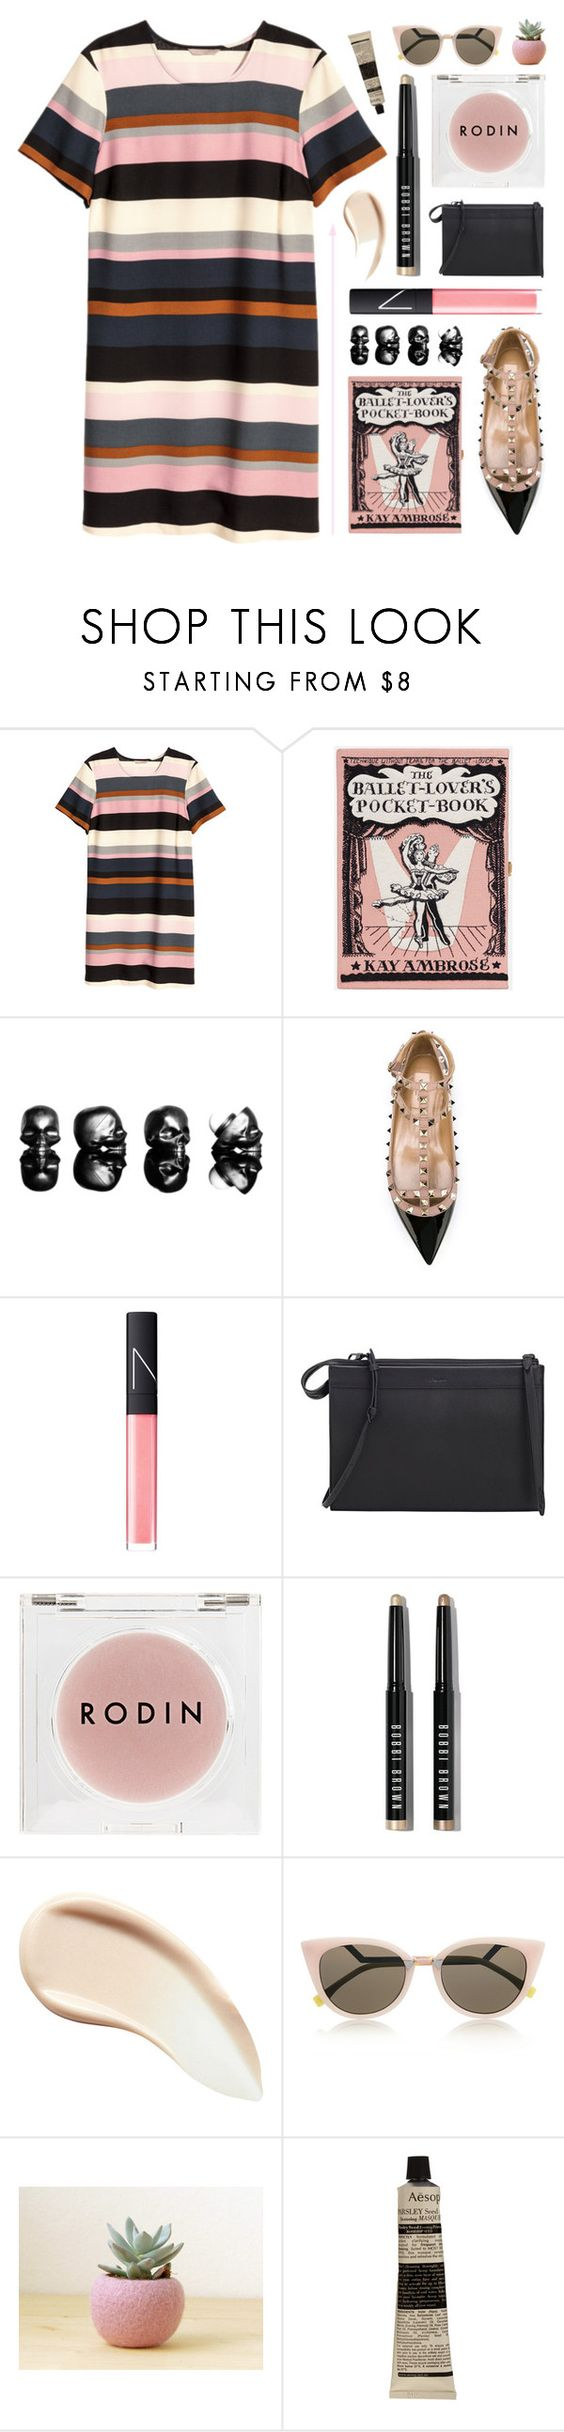 """""""Lines + Lies"""" by starit ❤ liked on Polyvore featuring H&M, Olympia Le-Tan, Valentino, NARS Cosmetics, 3.1 Phillip Lim, Rodin Olio Lusso, Bobbi Brown Cosmetics, Burberry, Fendi and Aesop"""